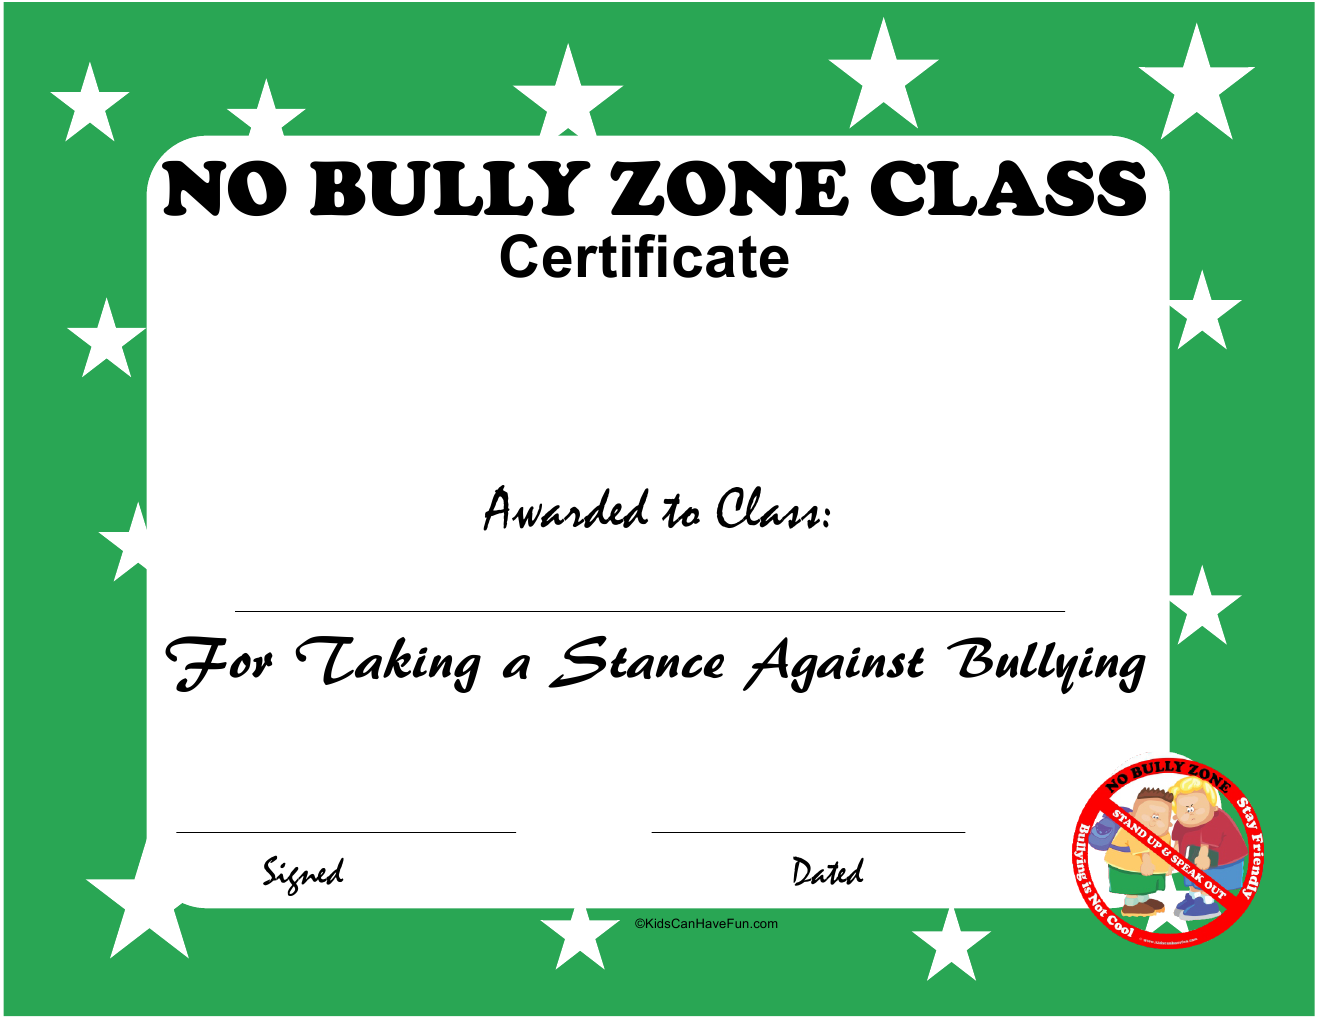 No Bully Zone Class Certificate Homeschool Pinterest